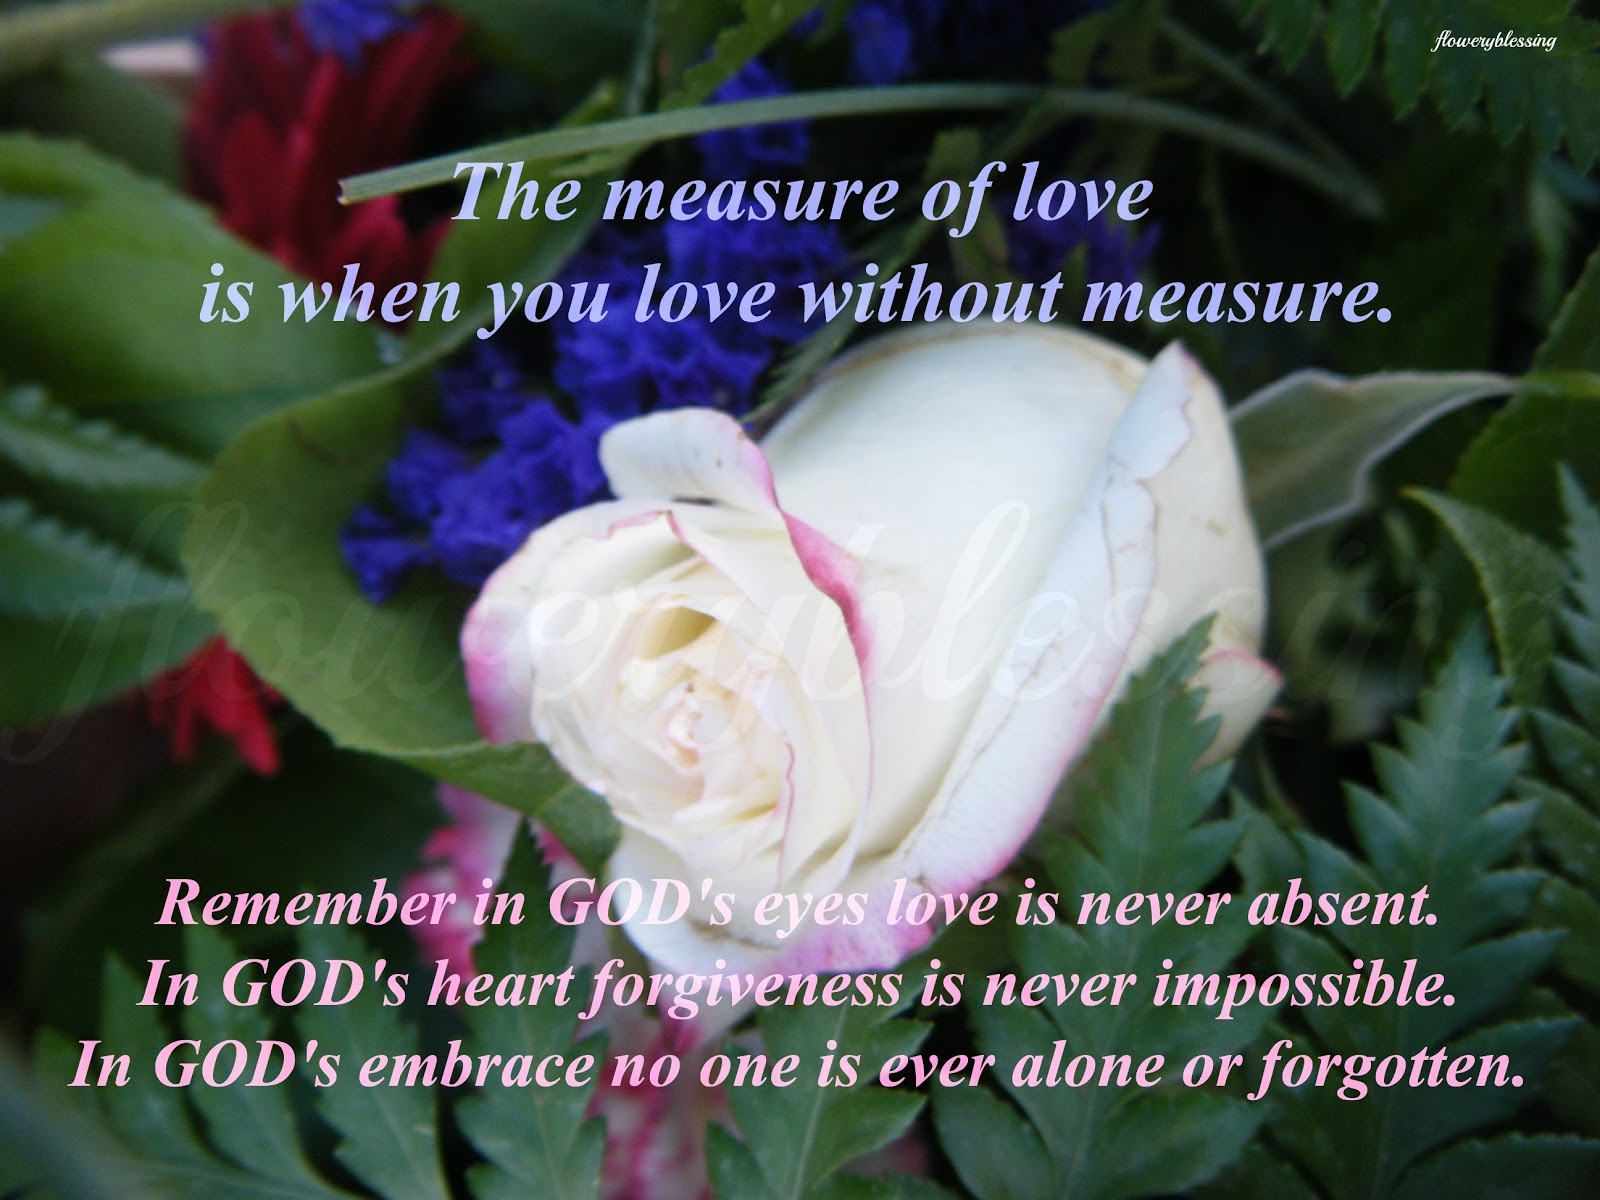 Flowery blessing: the measure of love is when you love without ...